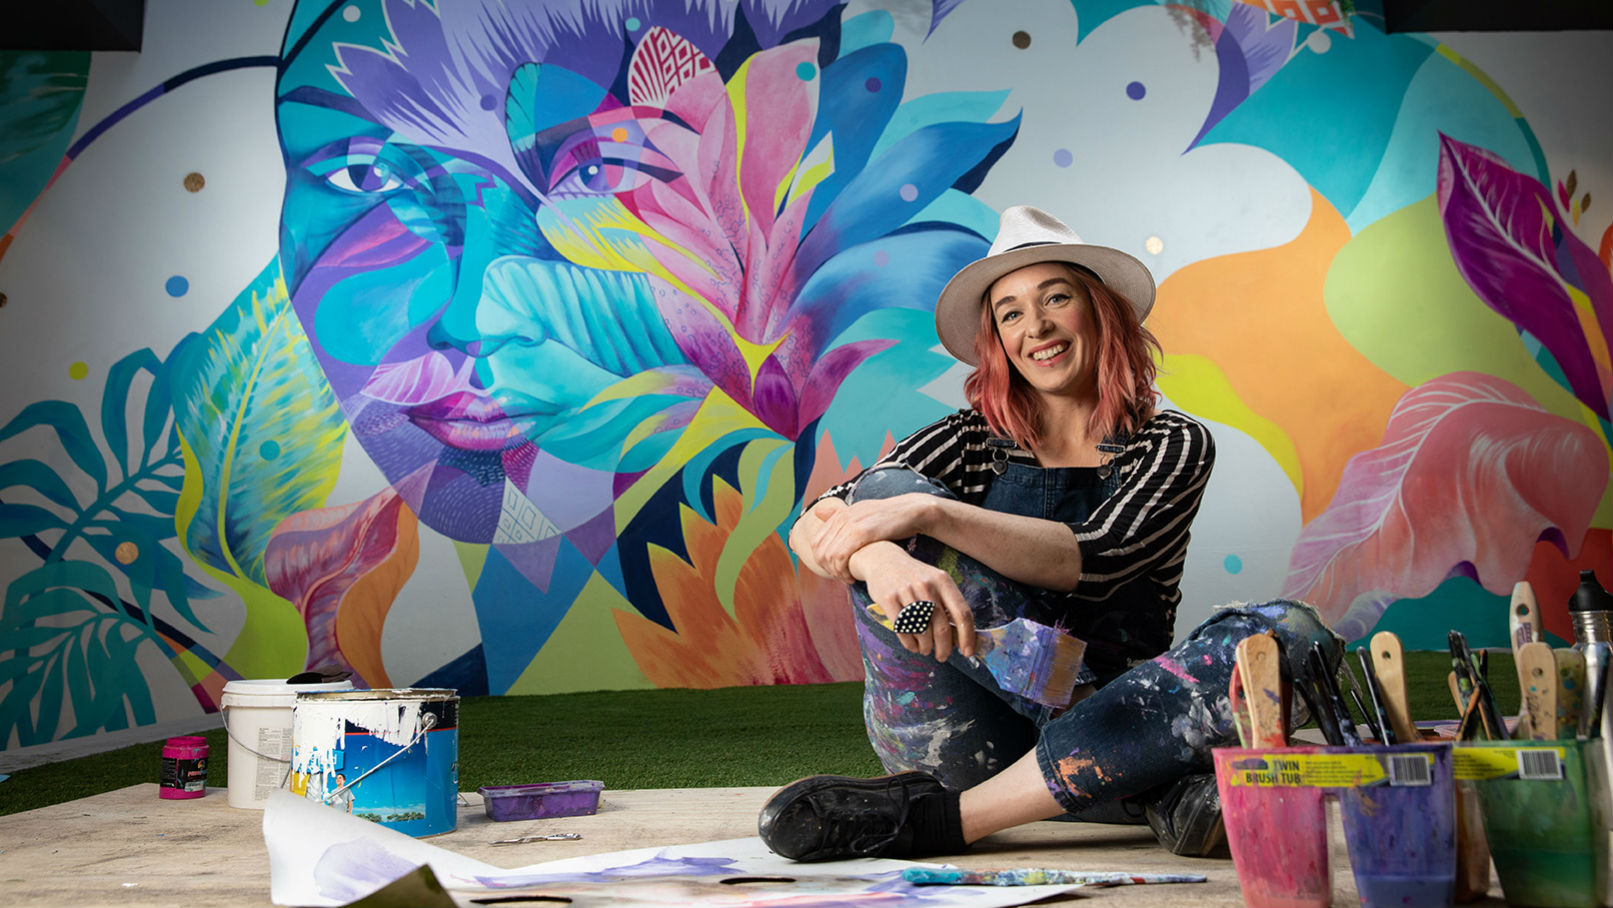 Accomplished international artist, Shannon Crees at the completion of her latest large scale mural work in our new Leichhardt branch.